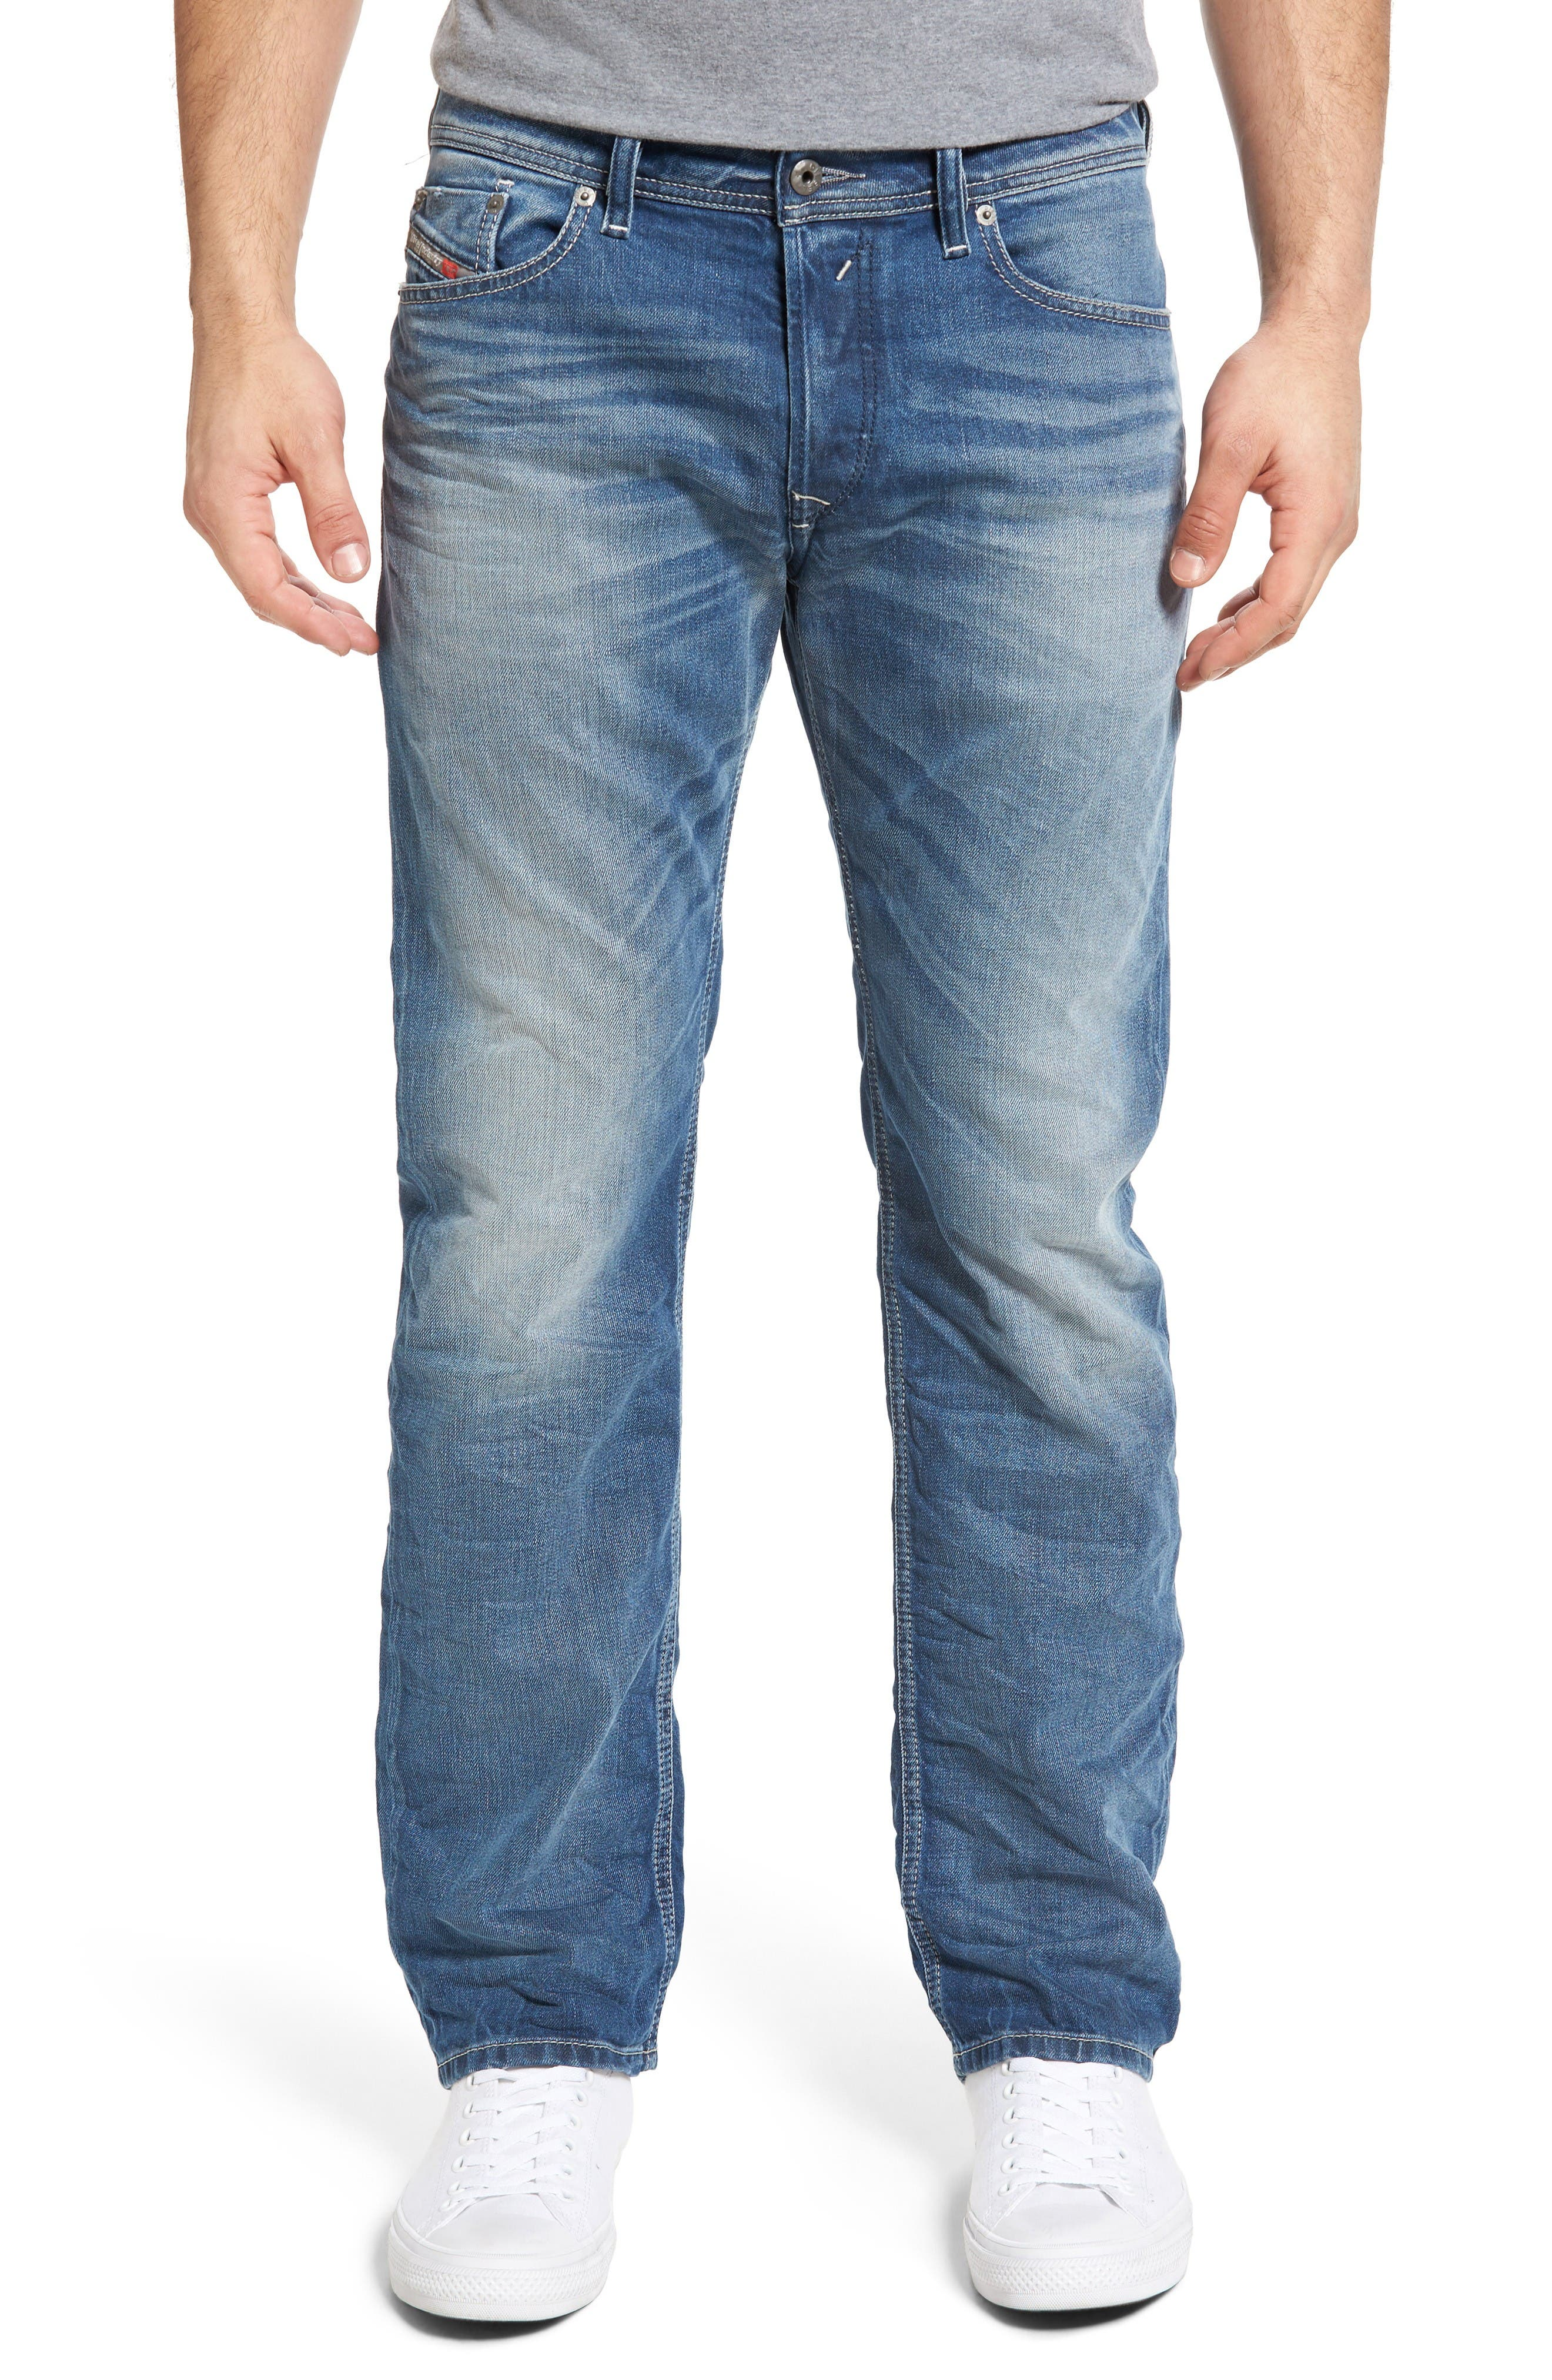 Waykee Straight Leg Jeans,                         Main,                         color, 084Df